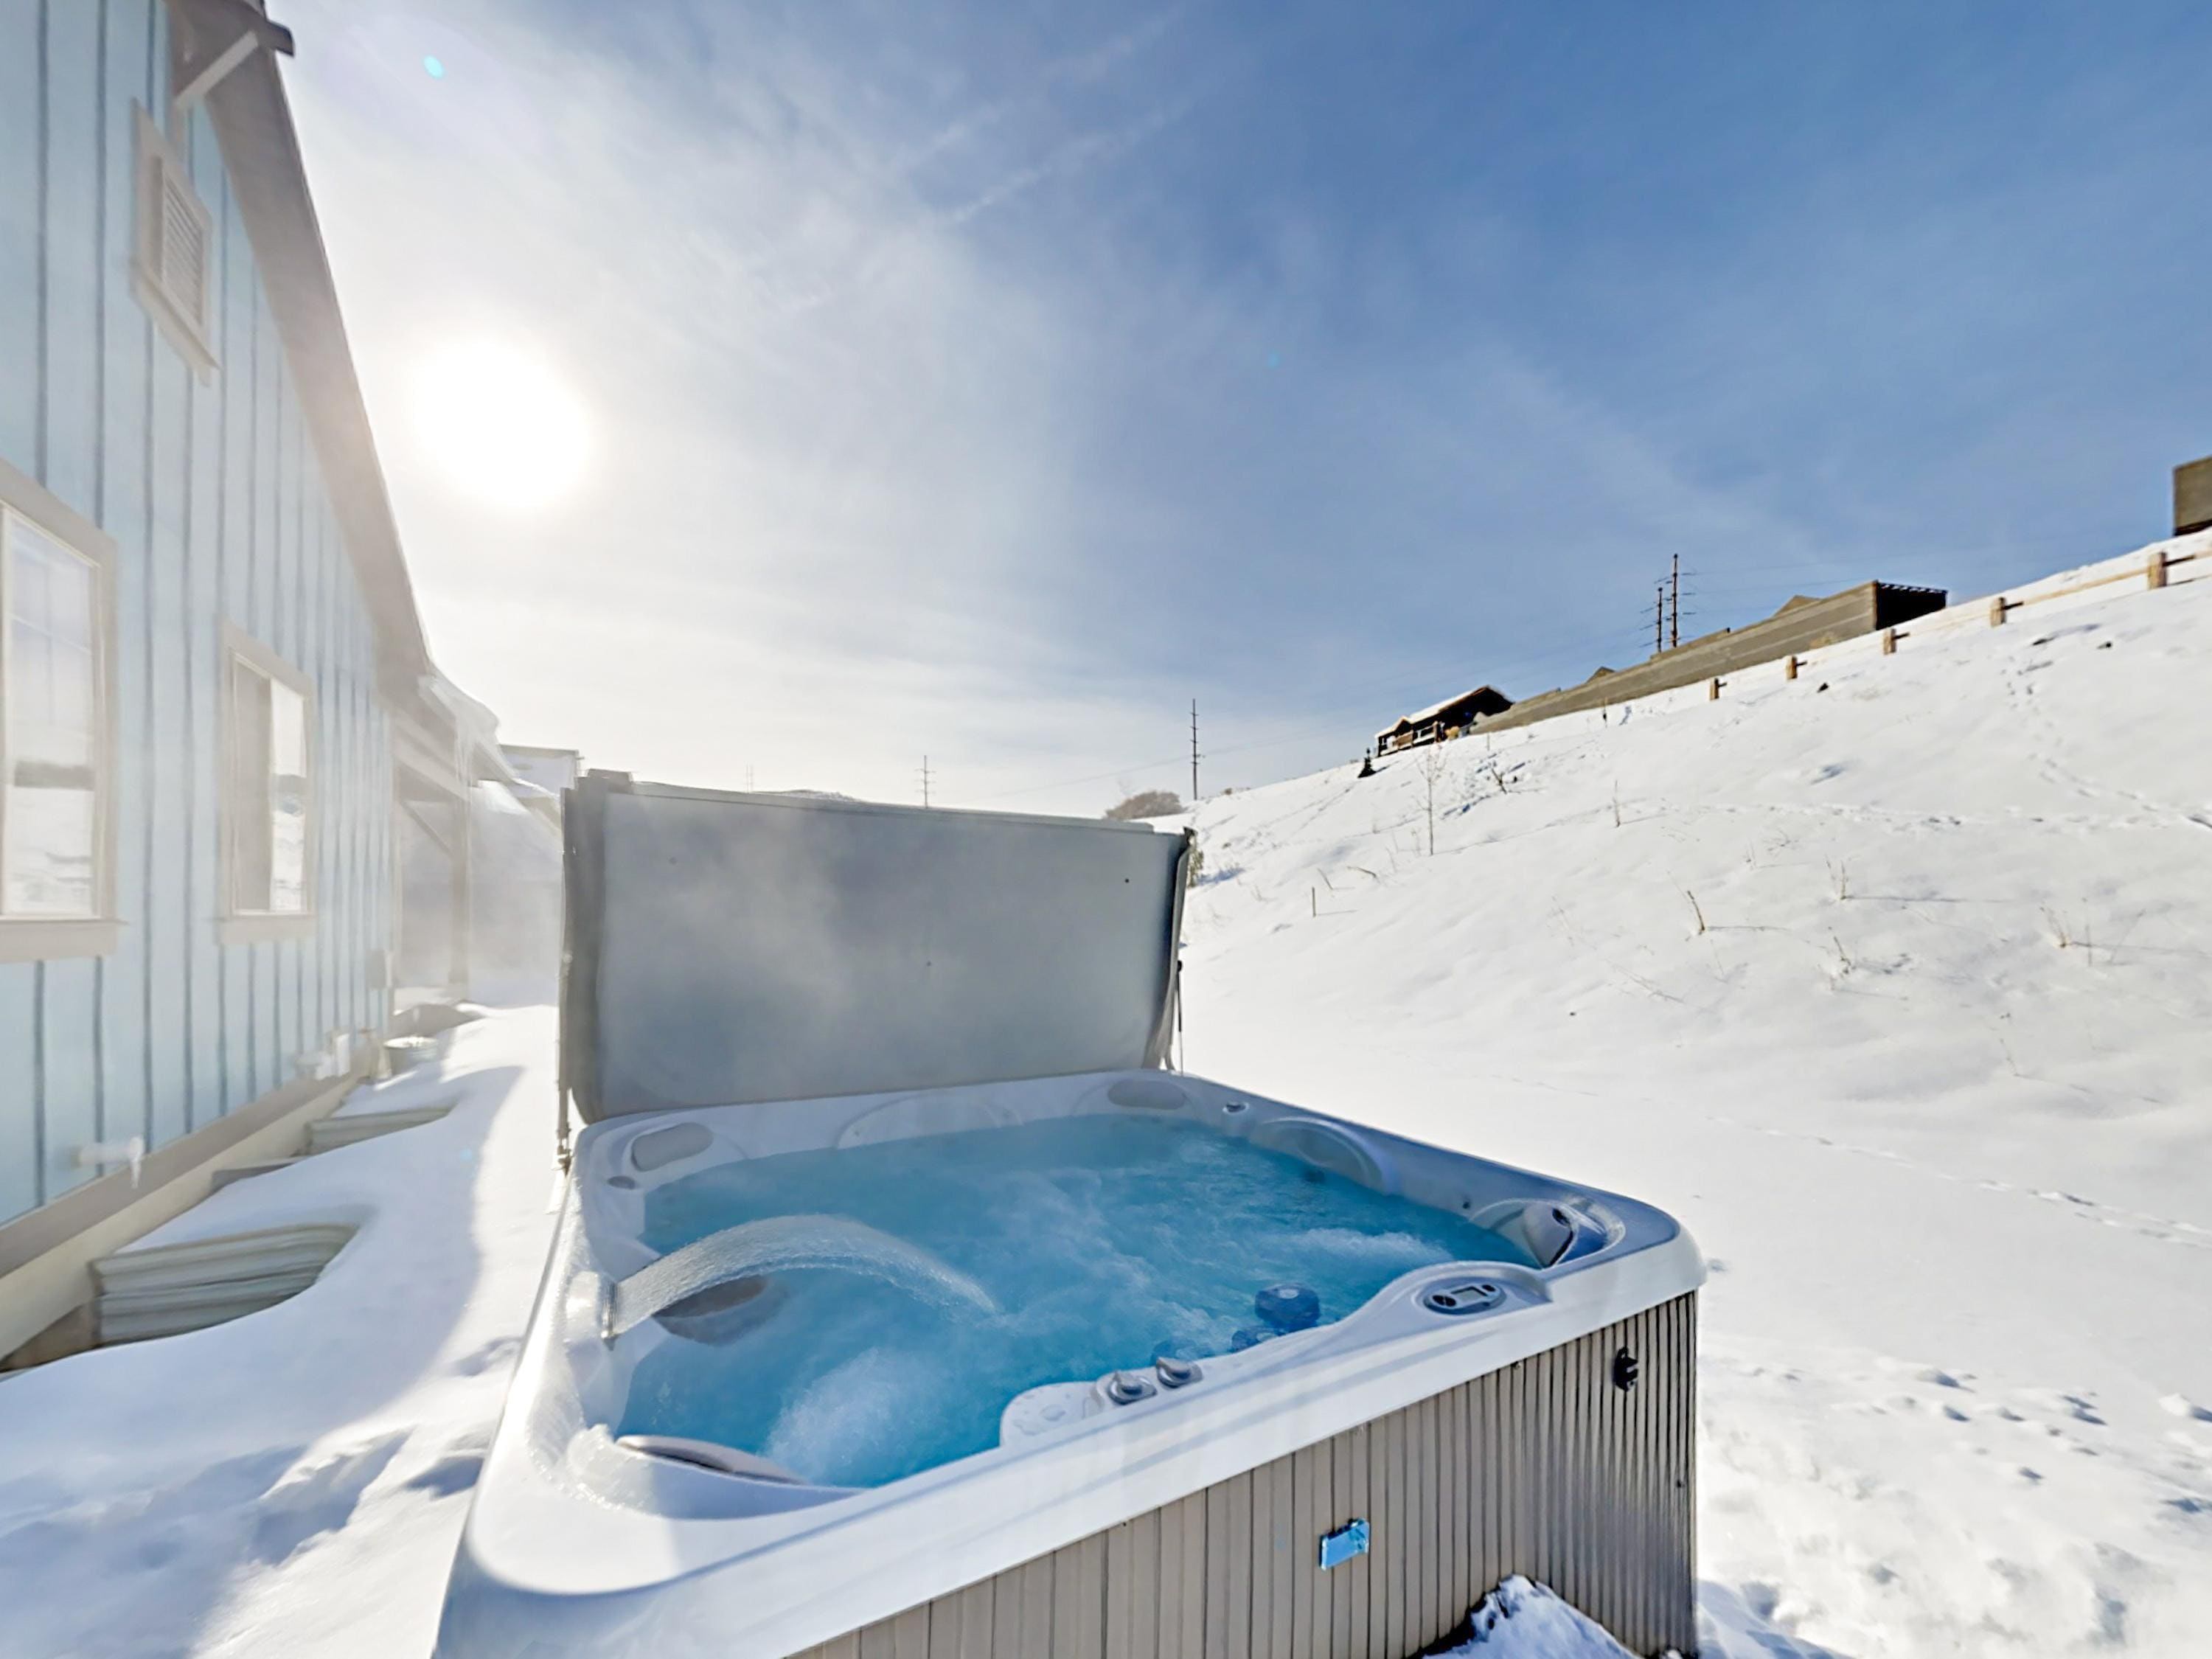 After hitting the ski slopes or hiking trails, soak in your private hot tub on the back patio.